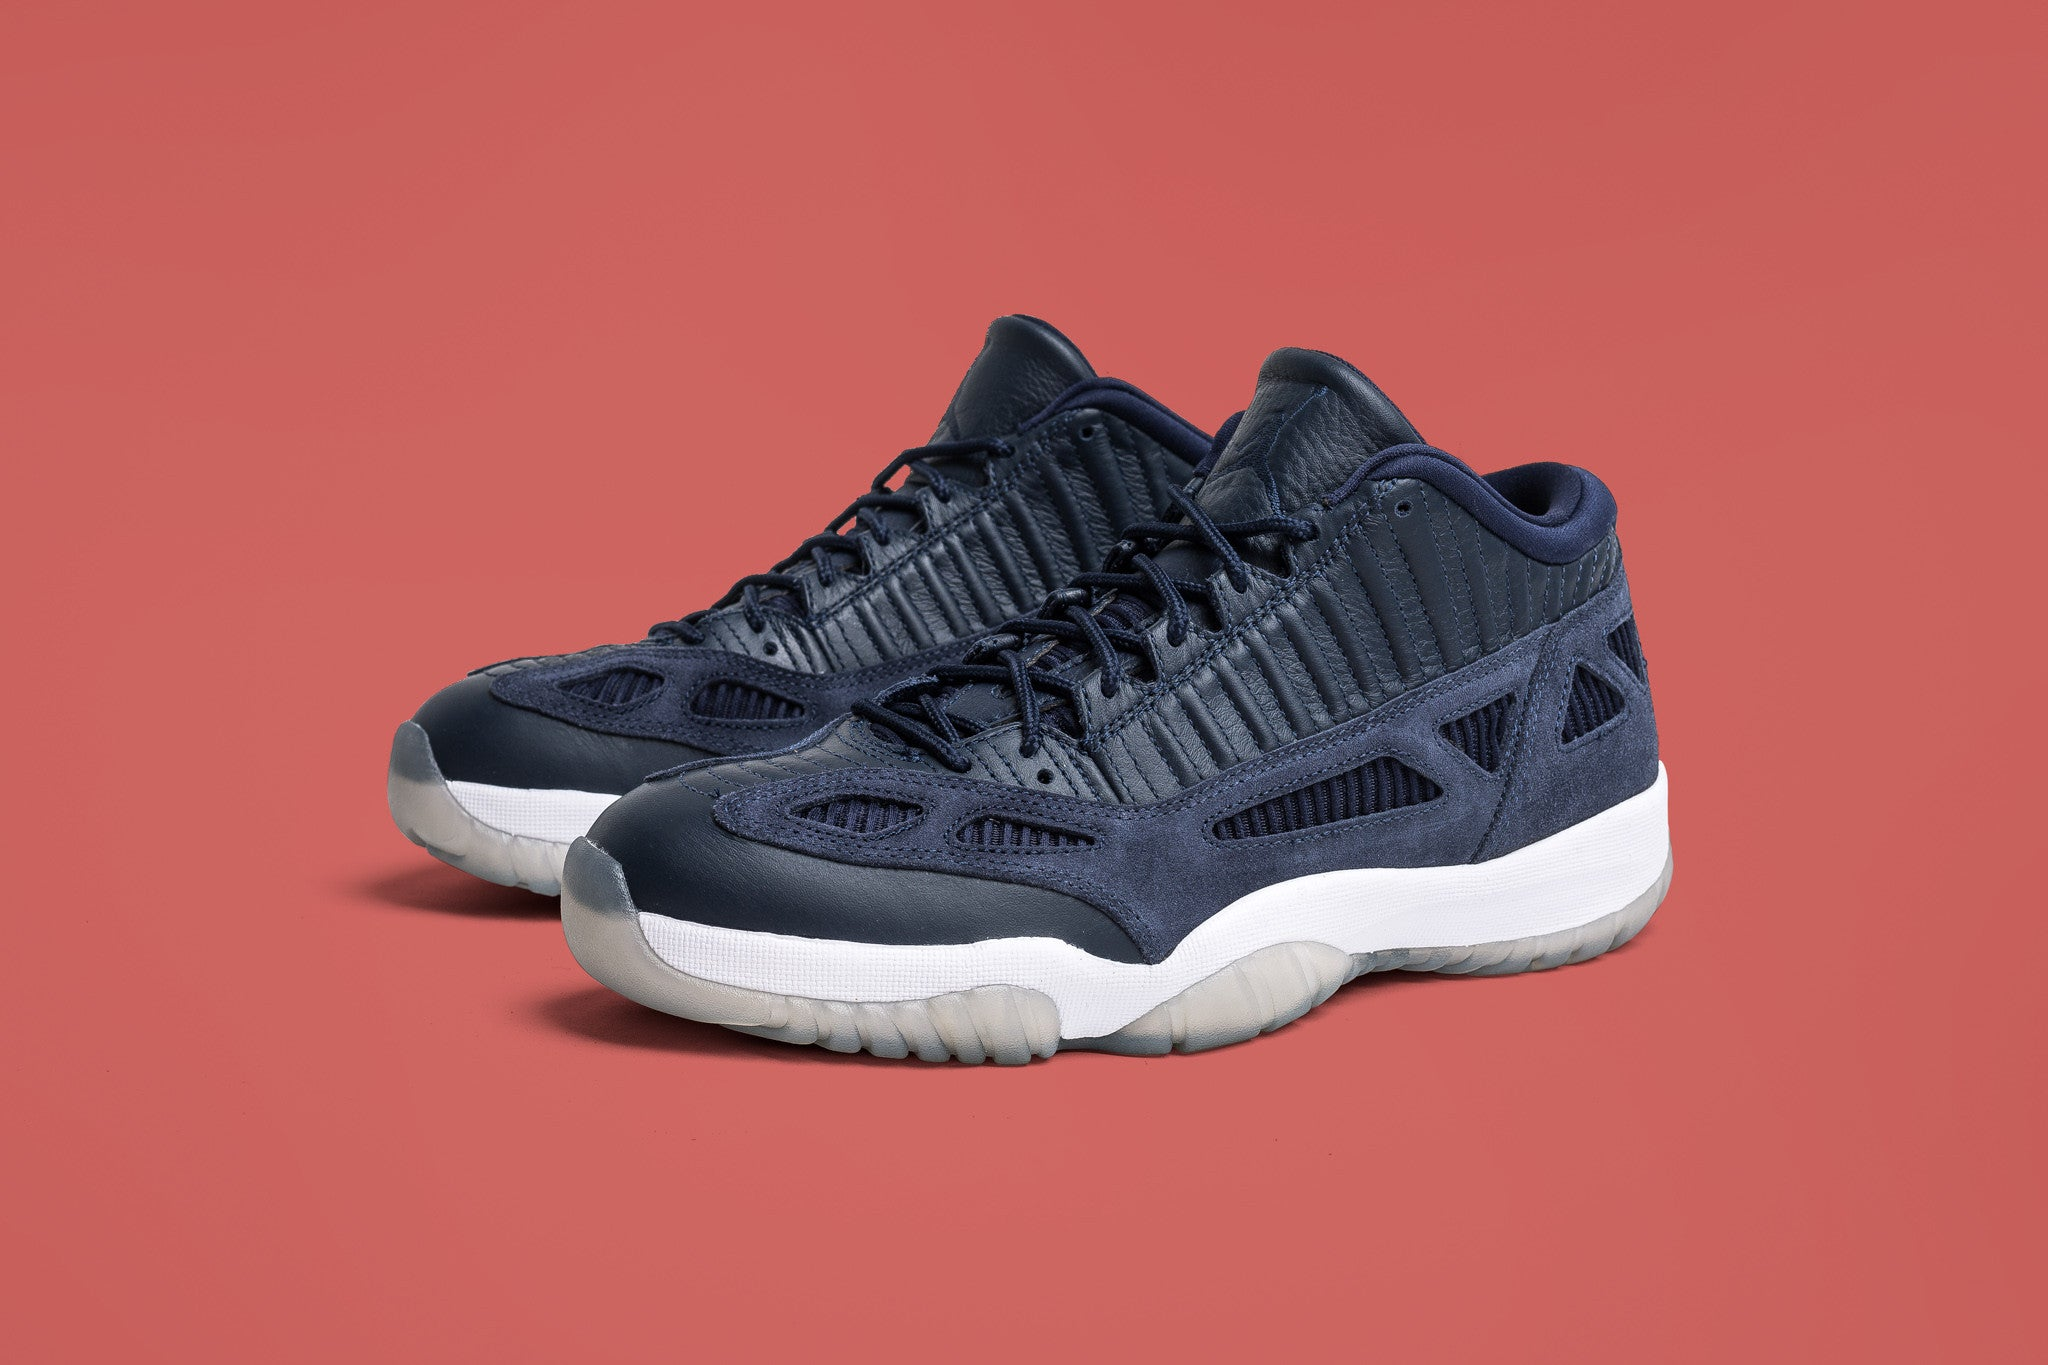 9270e9df26a3e4 ... sale air jordan 11 low ie midnight navy 07.29.17 eb6ec 3532d